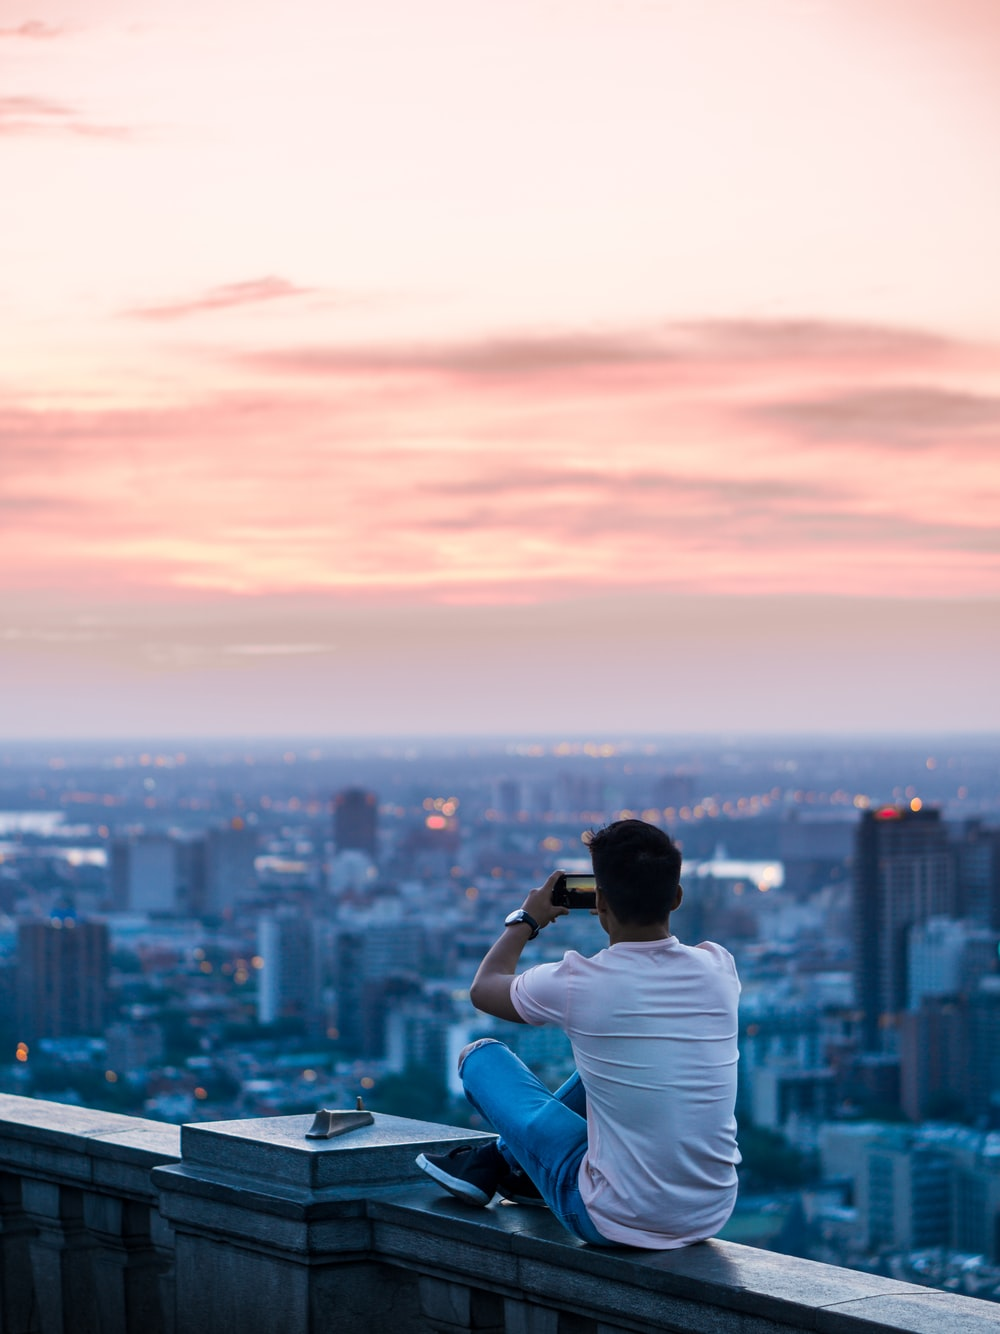 person sitting on edge of building taking photo of city during daytime